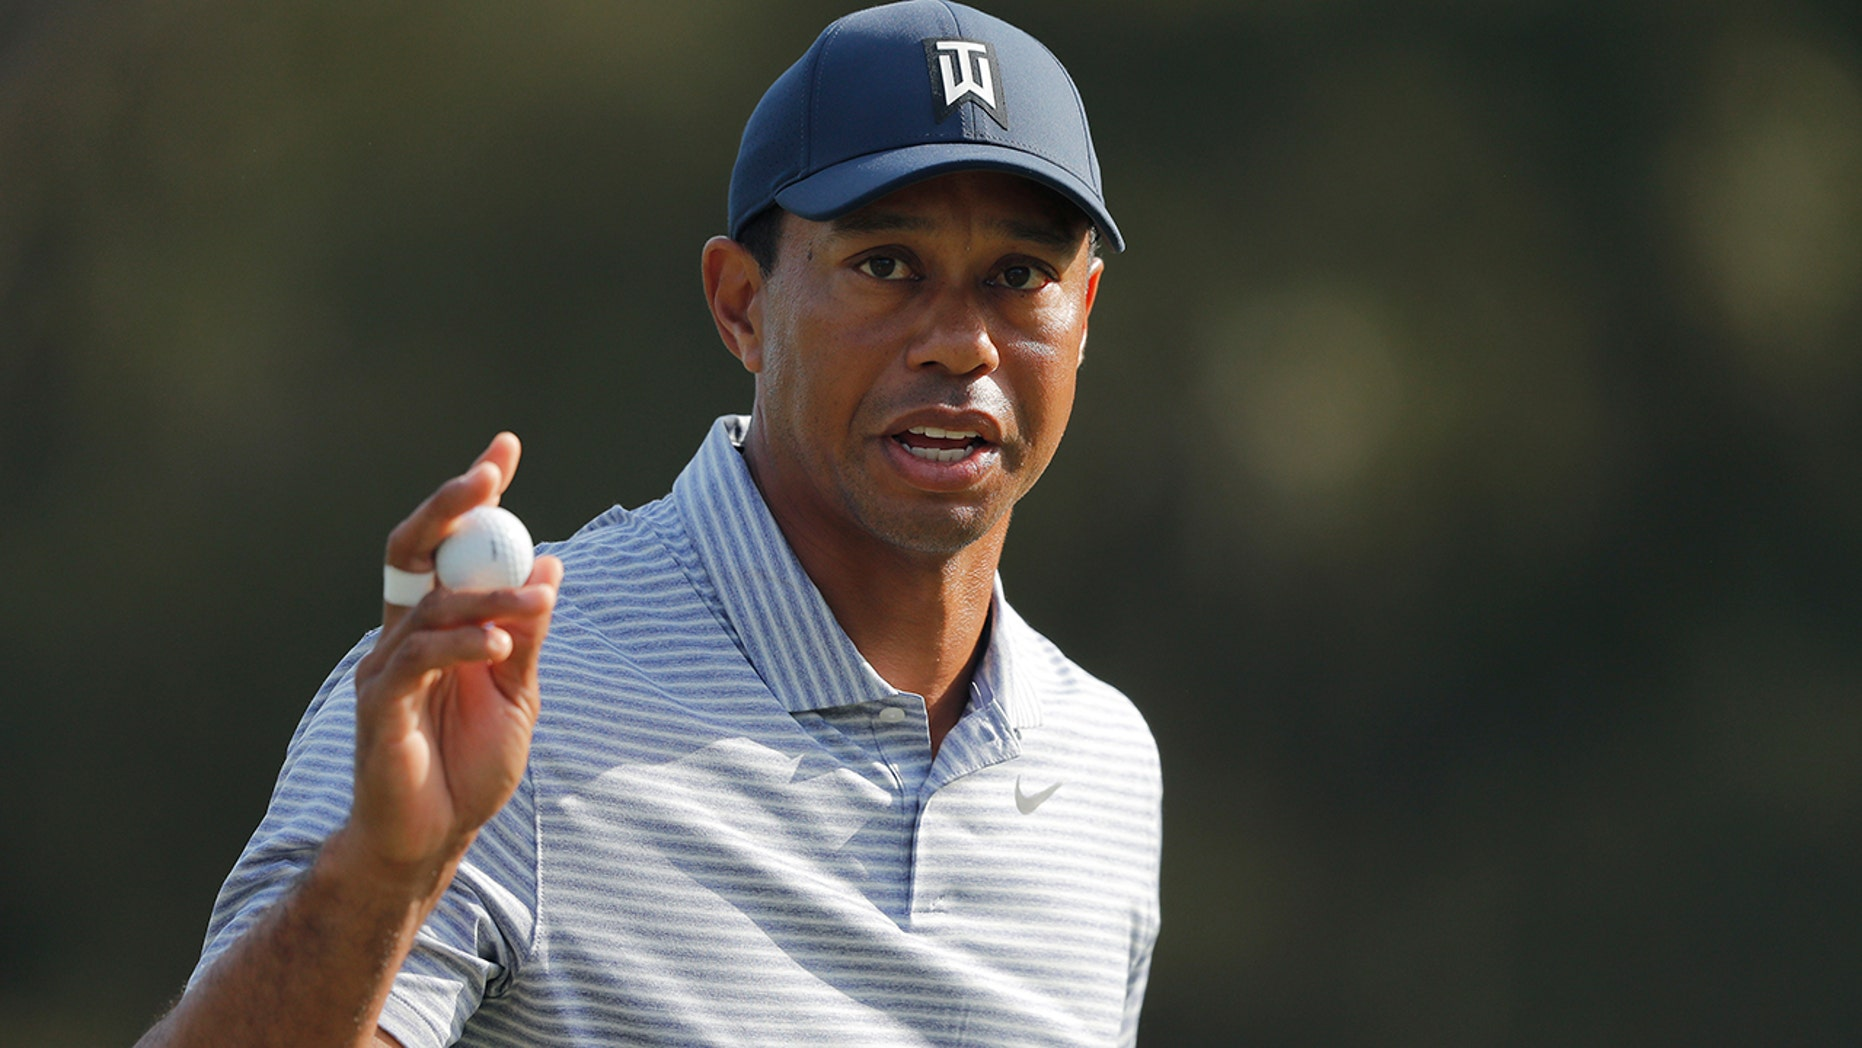 tiger woods cards highest score ever at 17  makes cut at